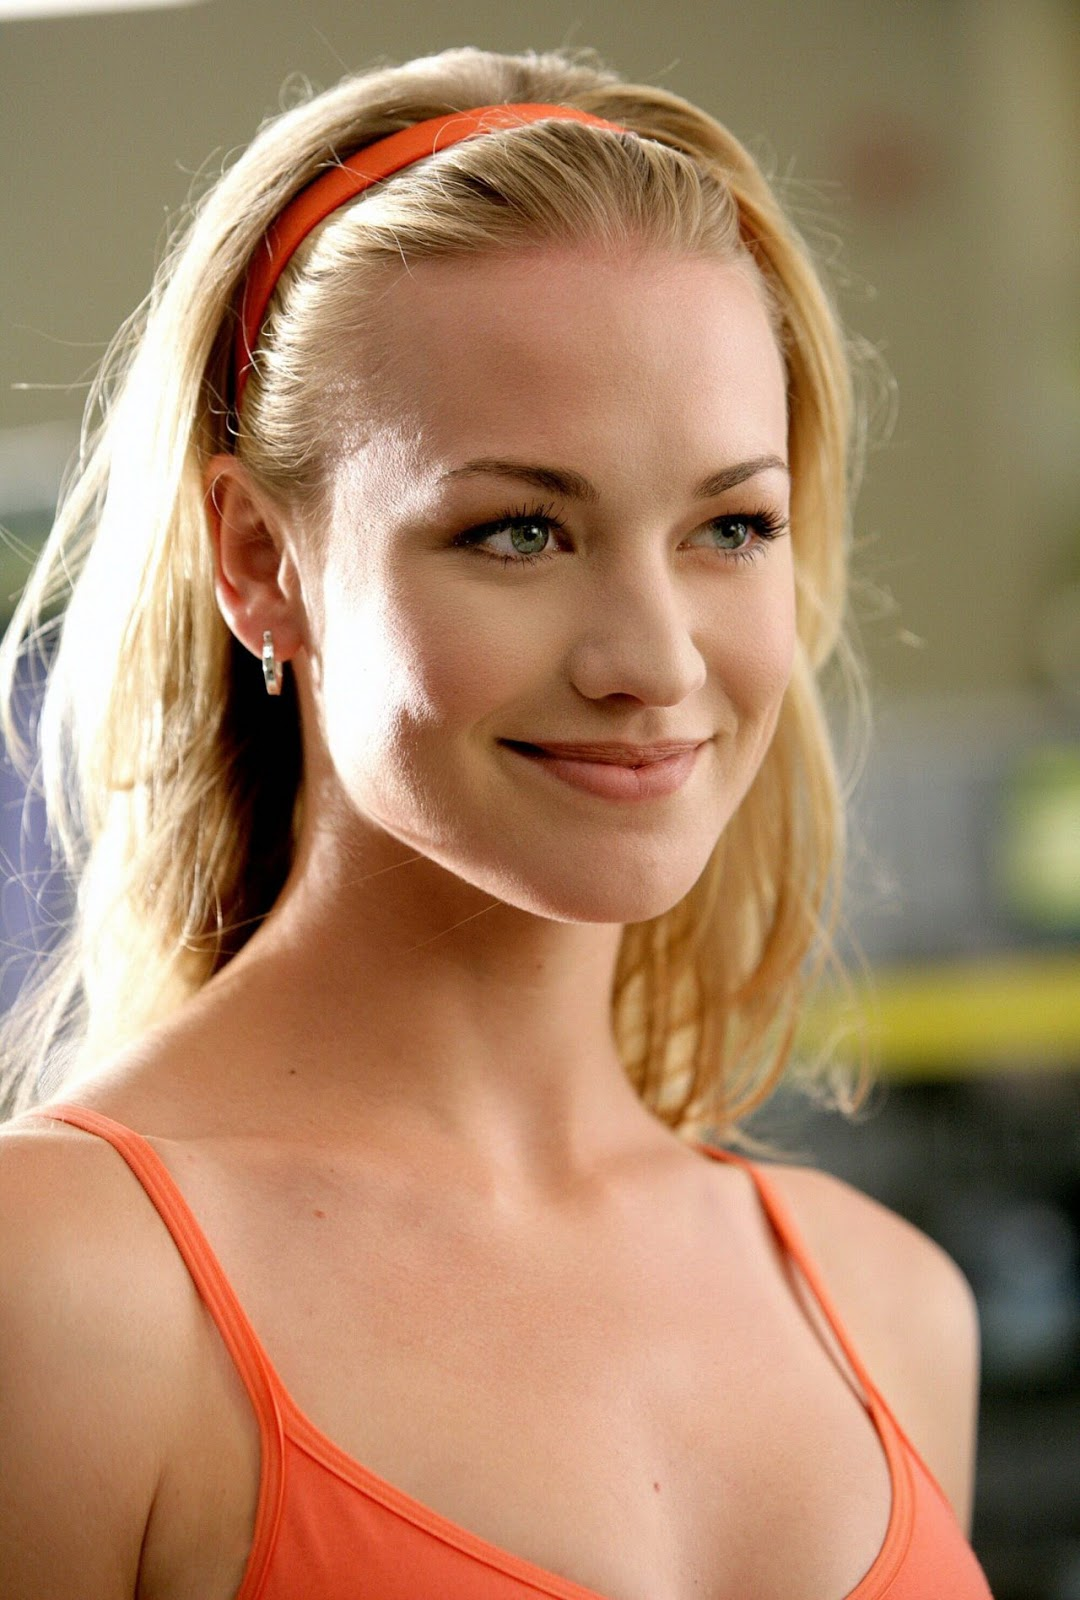 70 Hot Pictures Of Yvonne Strahovski The Handmaid S Tale Actress Best Hottie